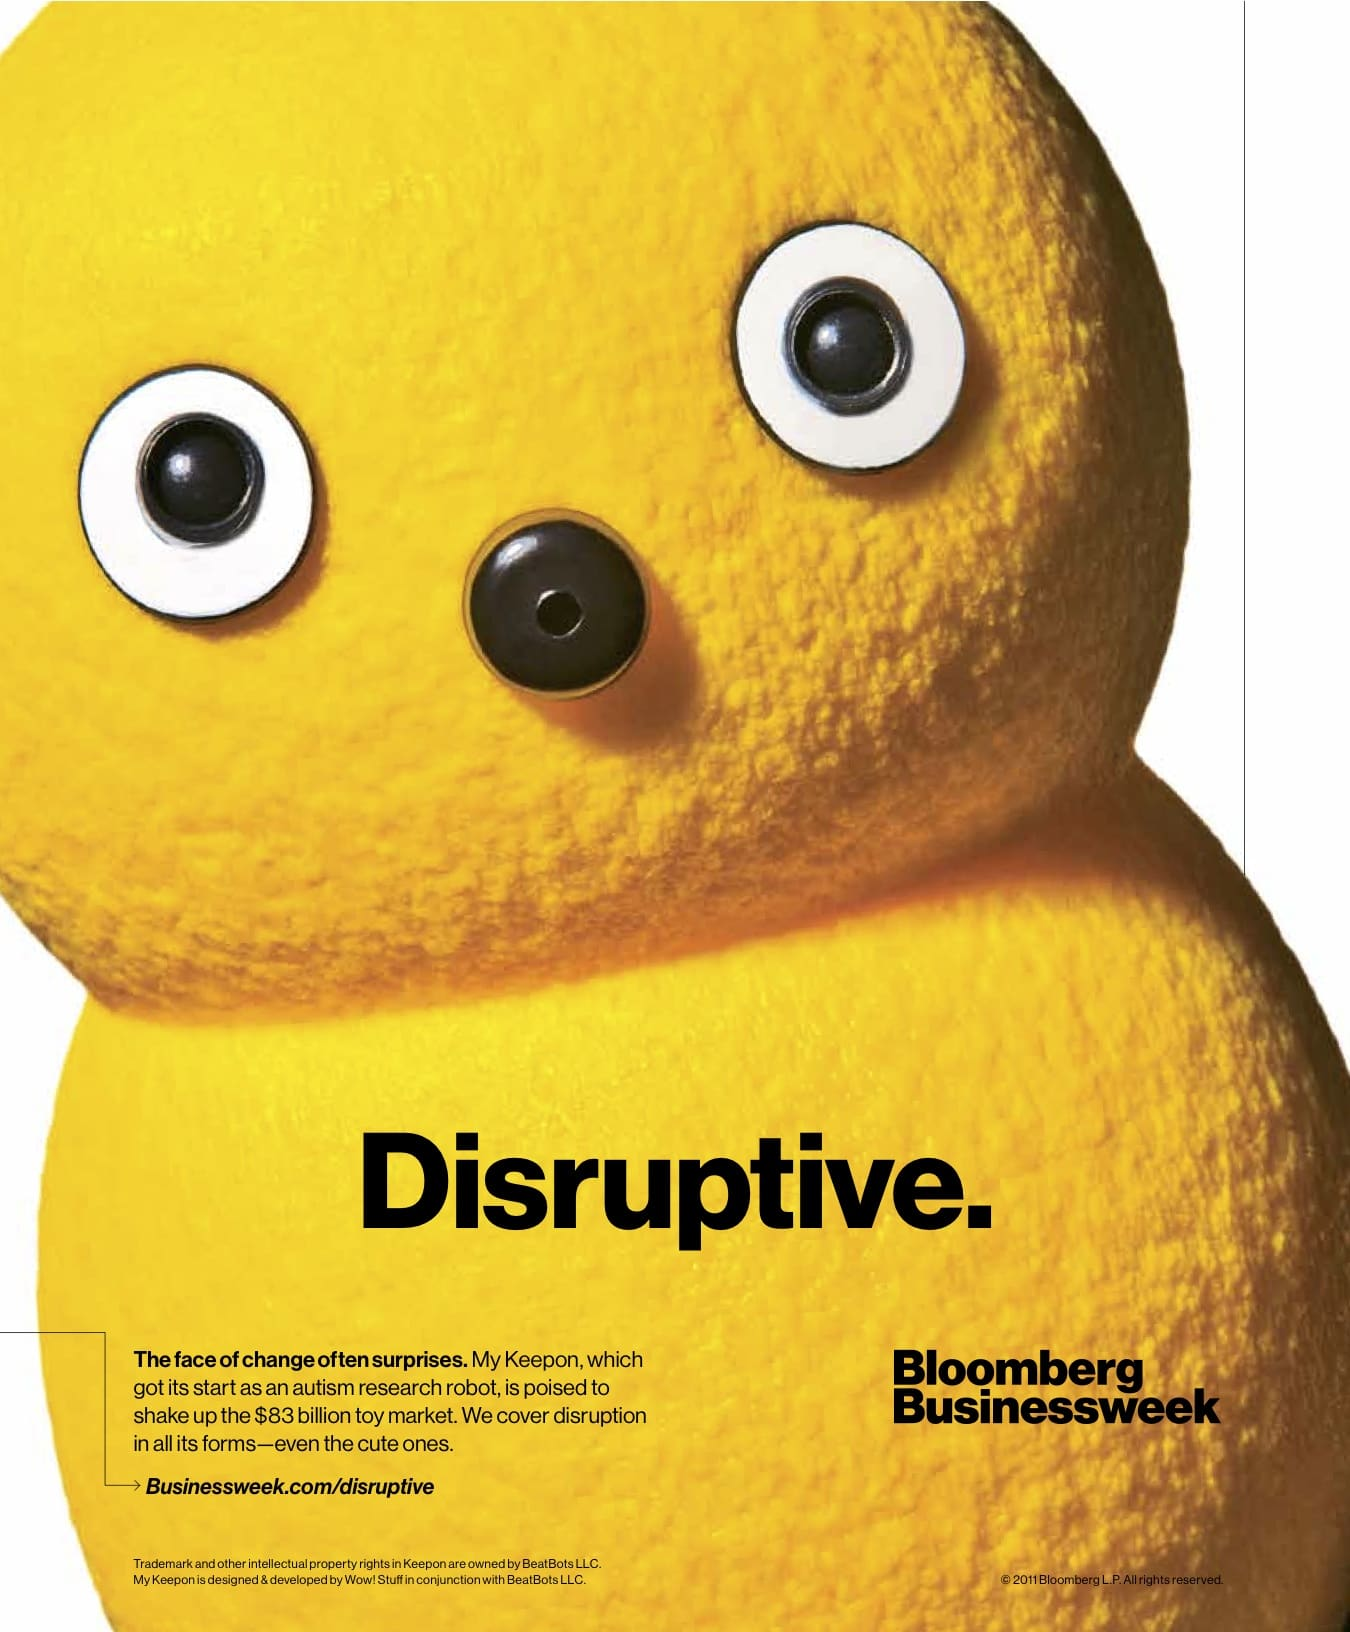 BloombergBusinessweek Brand Campaign